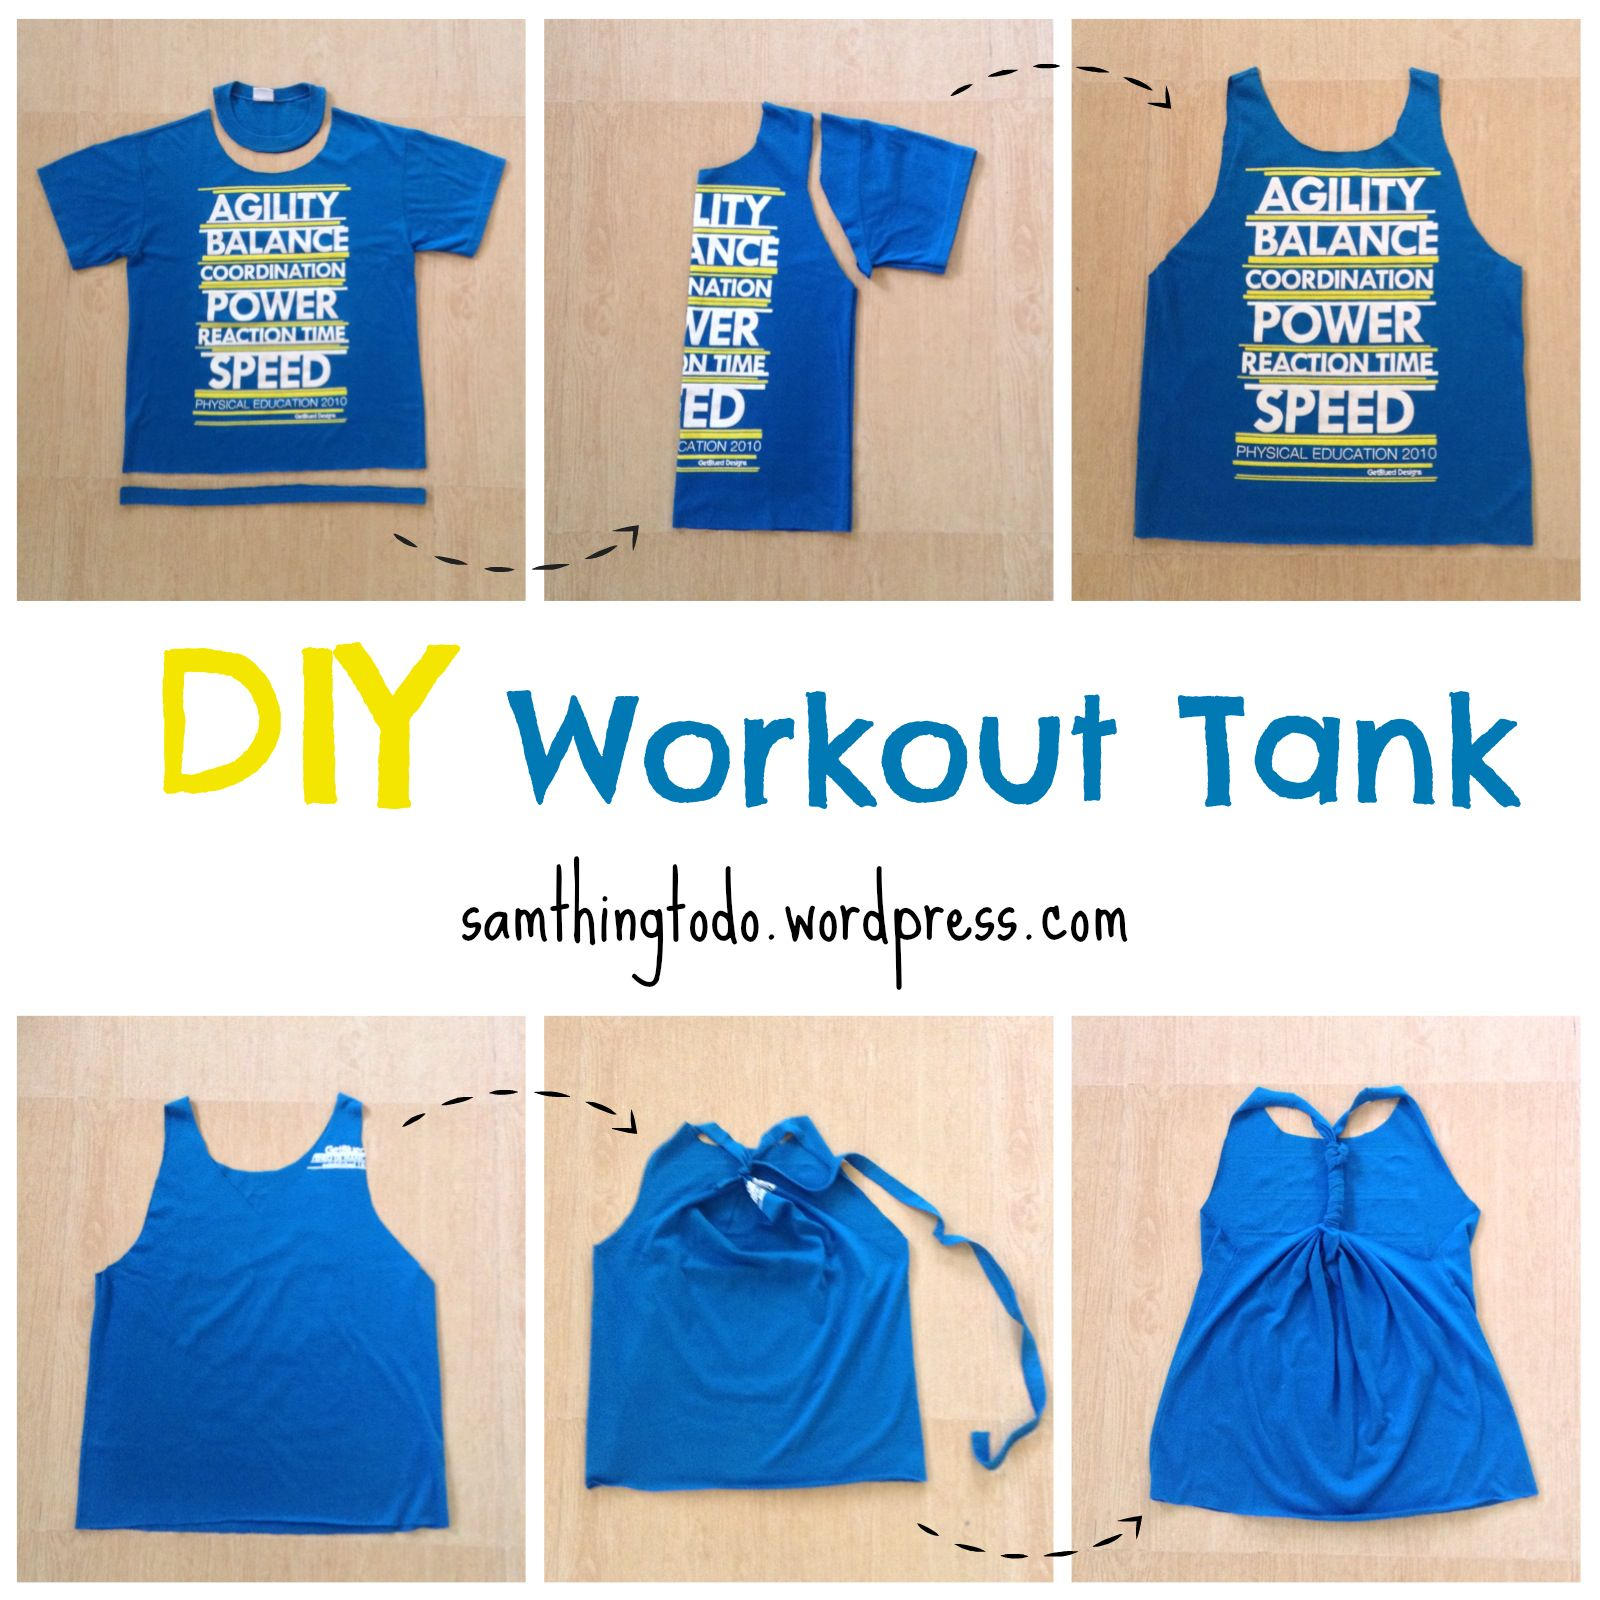 Cut Shirt Into Tank Top Ideas